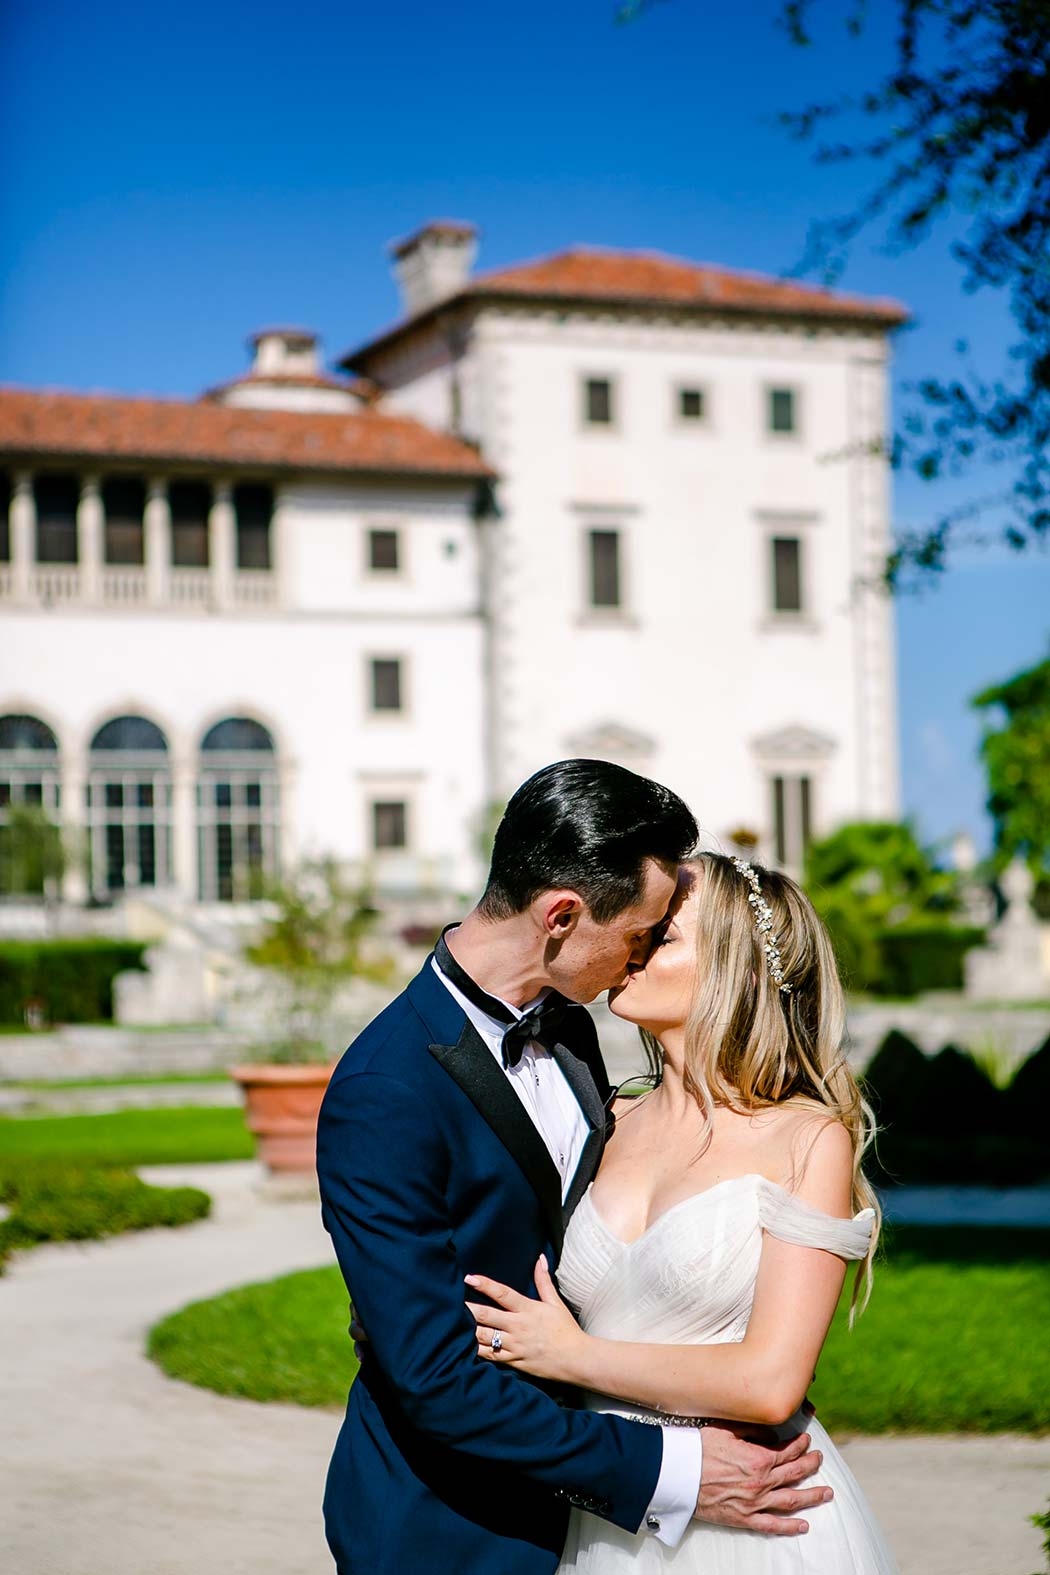 couple kiss during engagement photoshoot at vizcaya | bridal pictures vizcaya | bridal portrait photography vizcaya museum